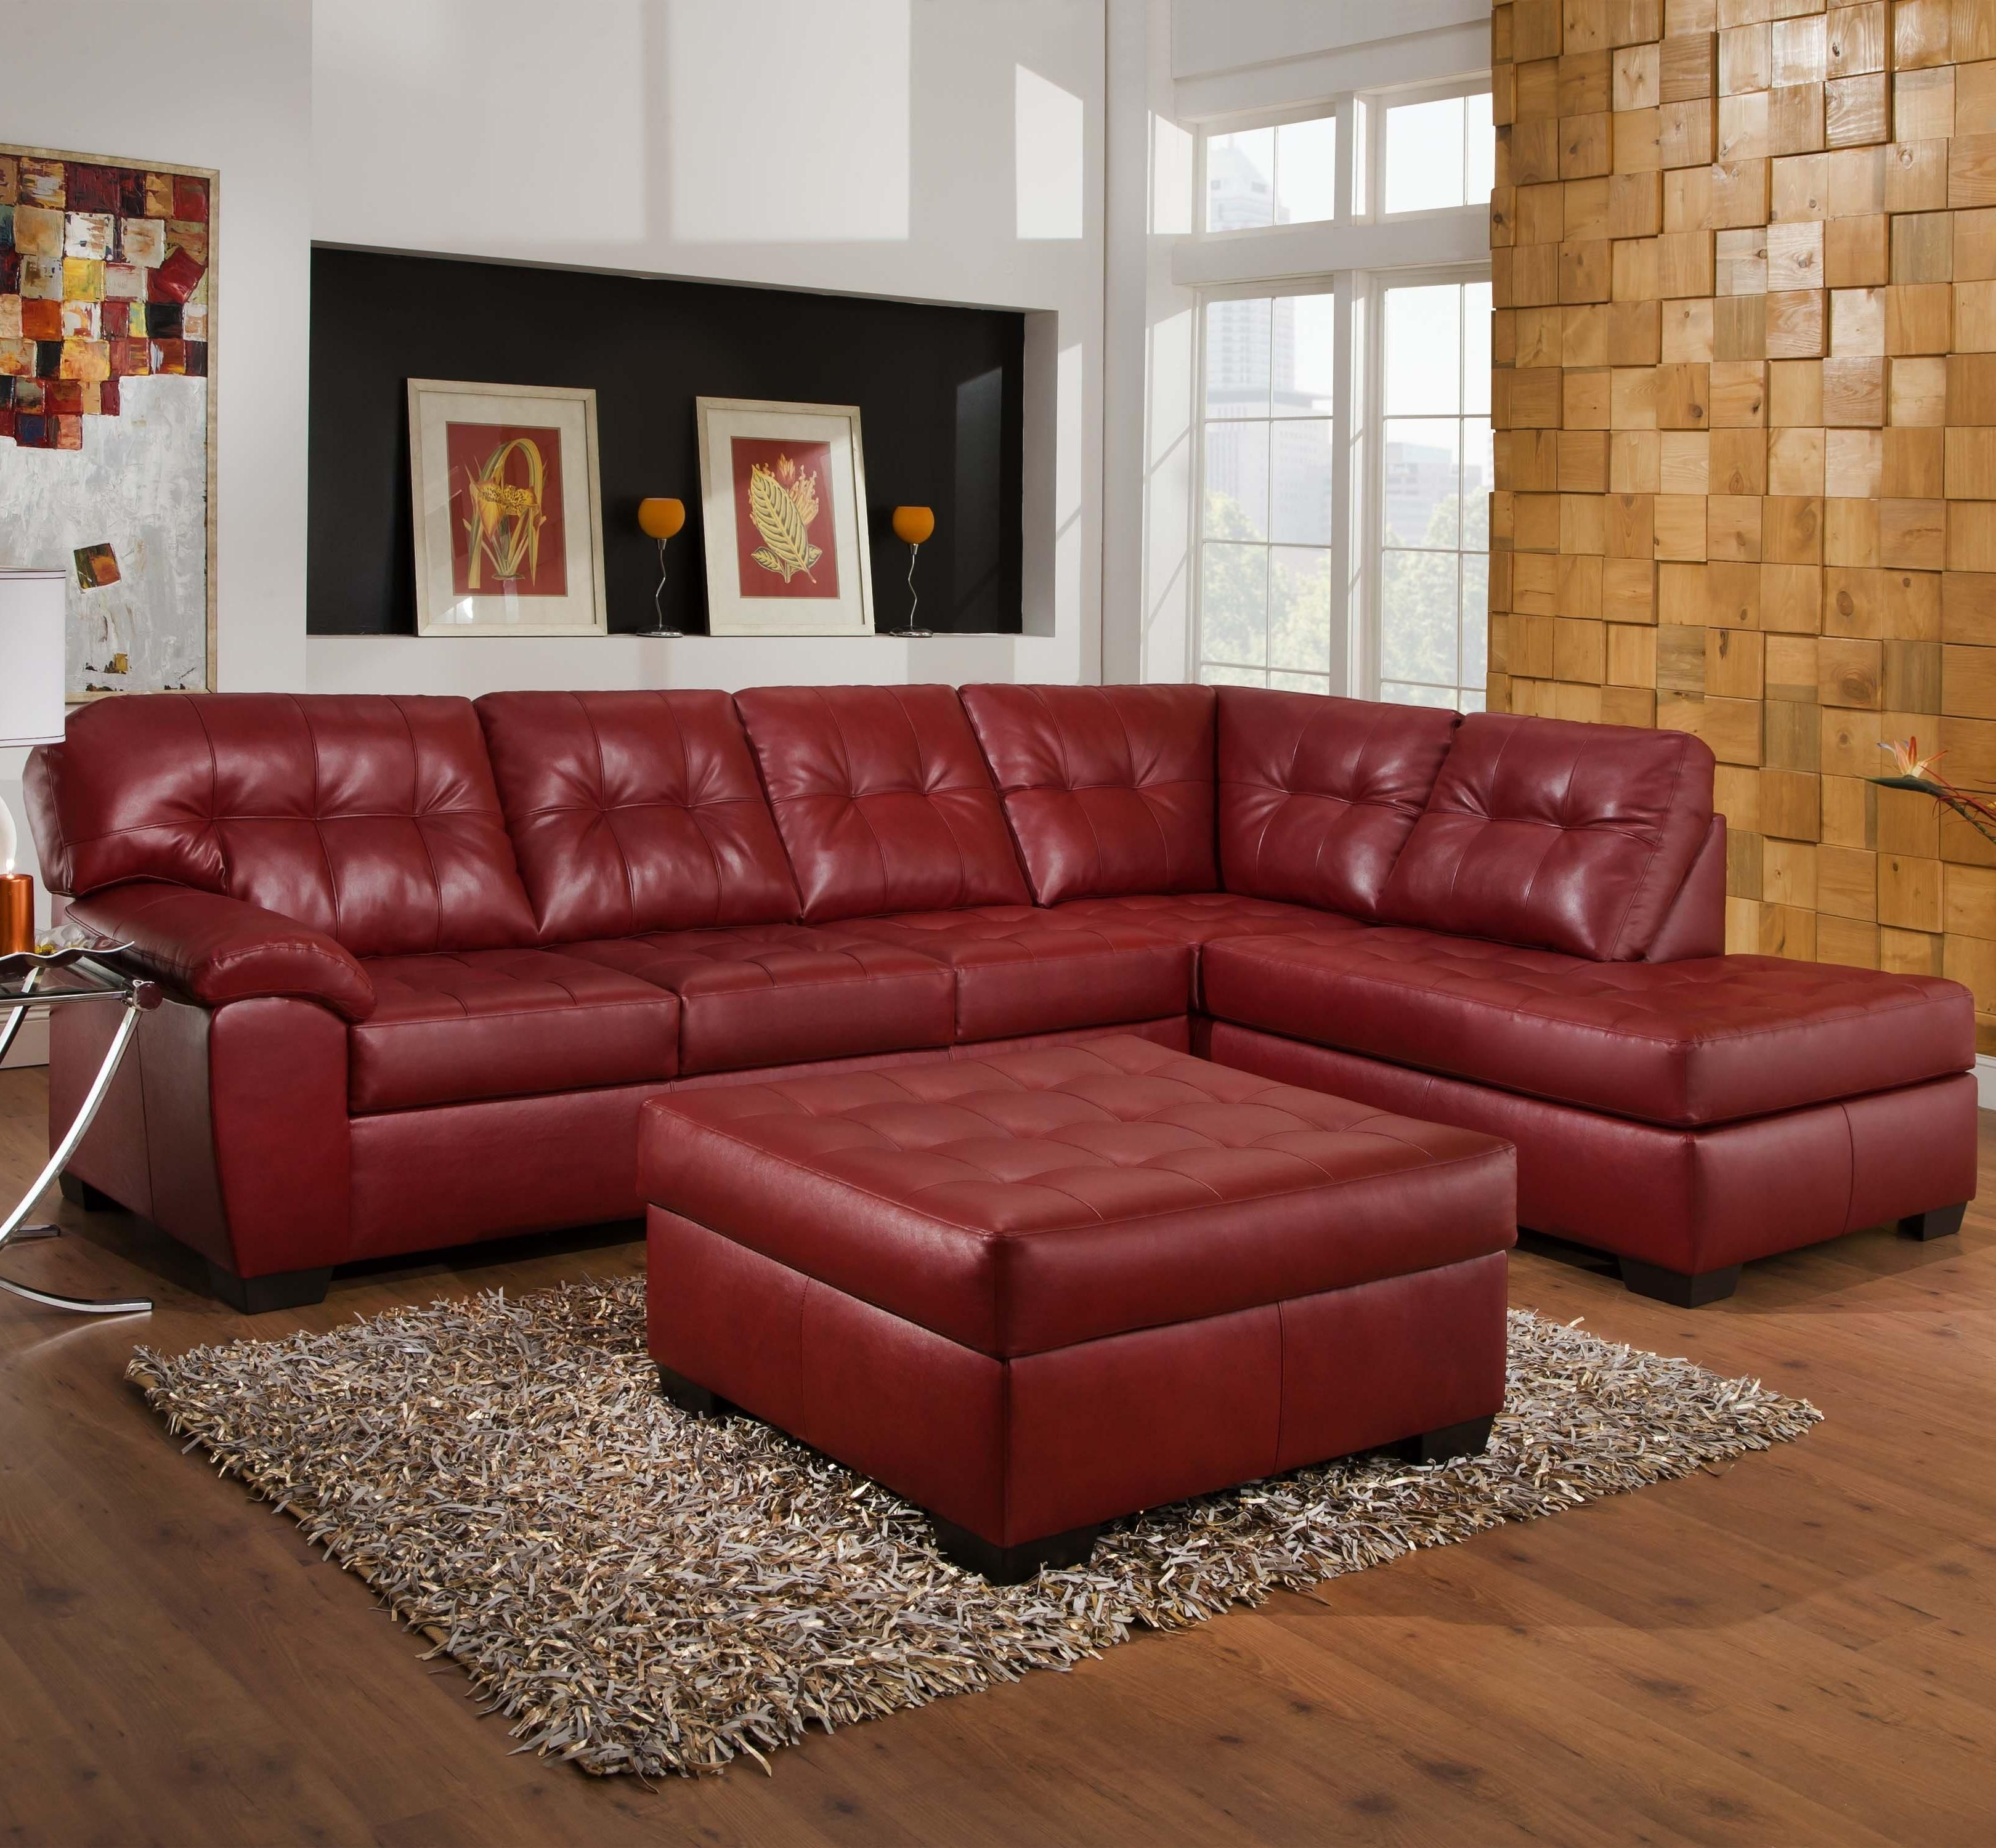 9569 2 Piece Sectional With Tufted Seats & Backsimmons With Regard To Memphis Sectional Sofas (View 3 of 10)